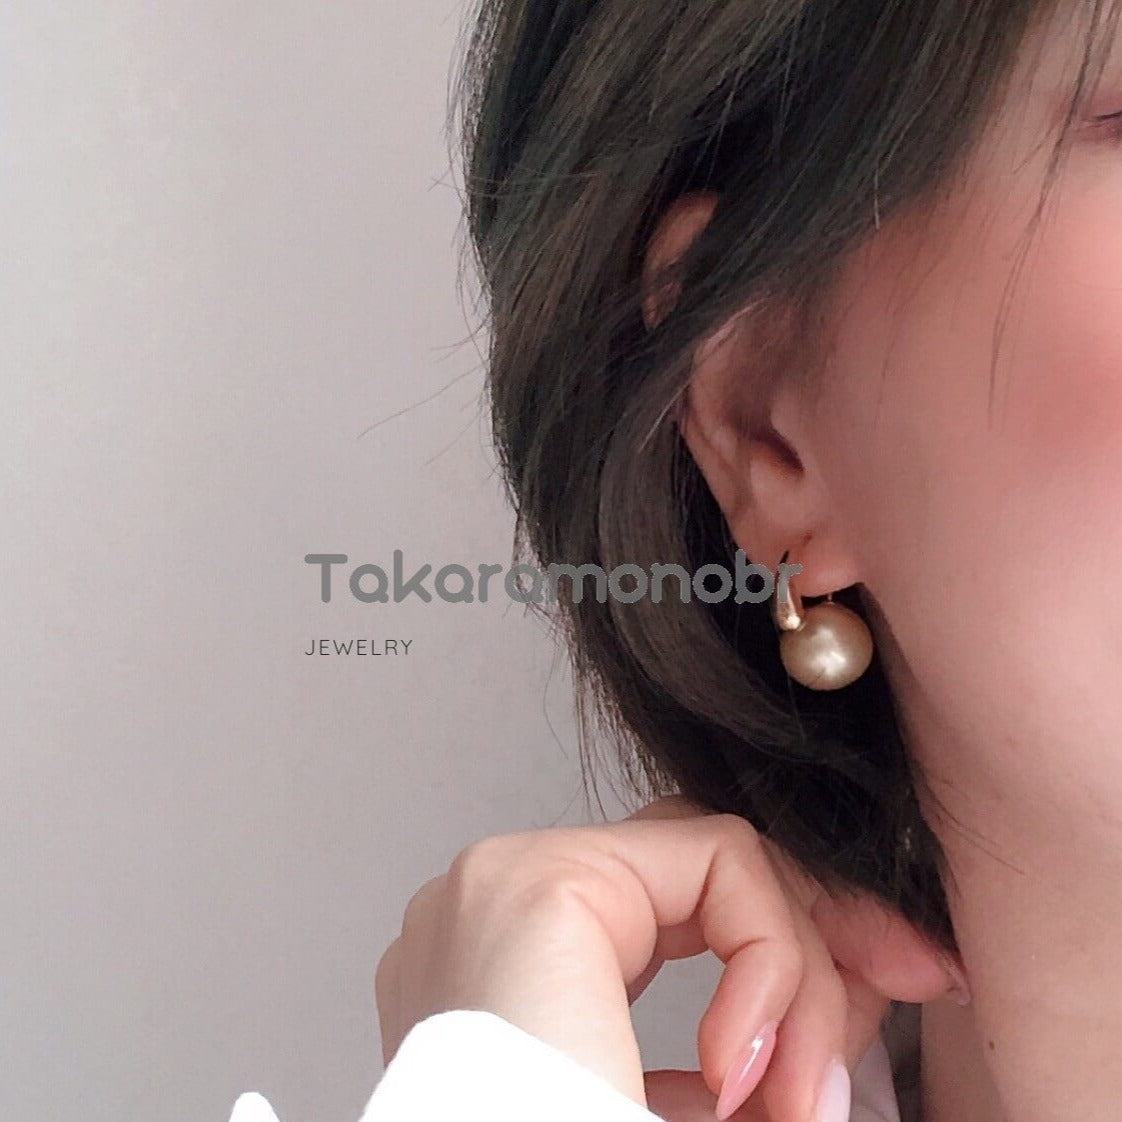 13.0-14.0 mm Golden South Sea Pearl Earrings in 18K Gold for Women - takaramonobr